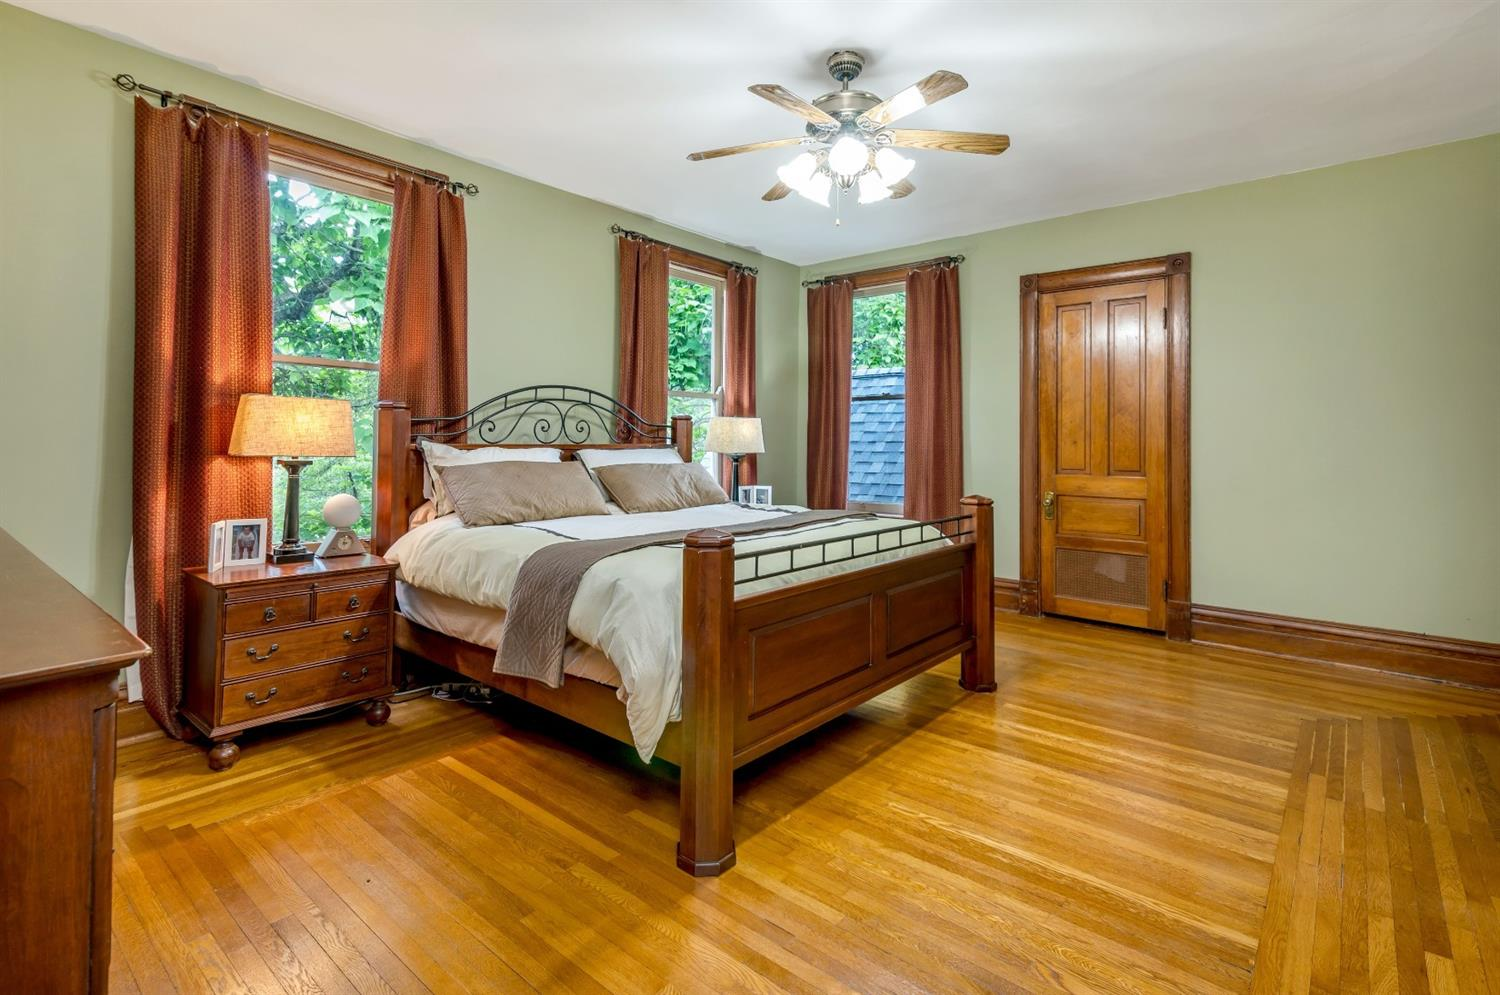 The primary bedroom suite offers 2 walk-in closet, attached bath and sitting room with fireplace.